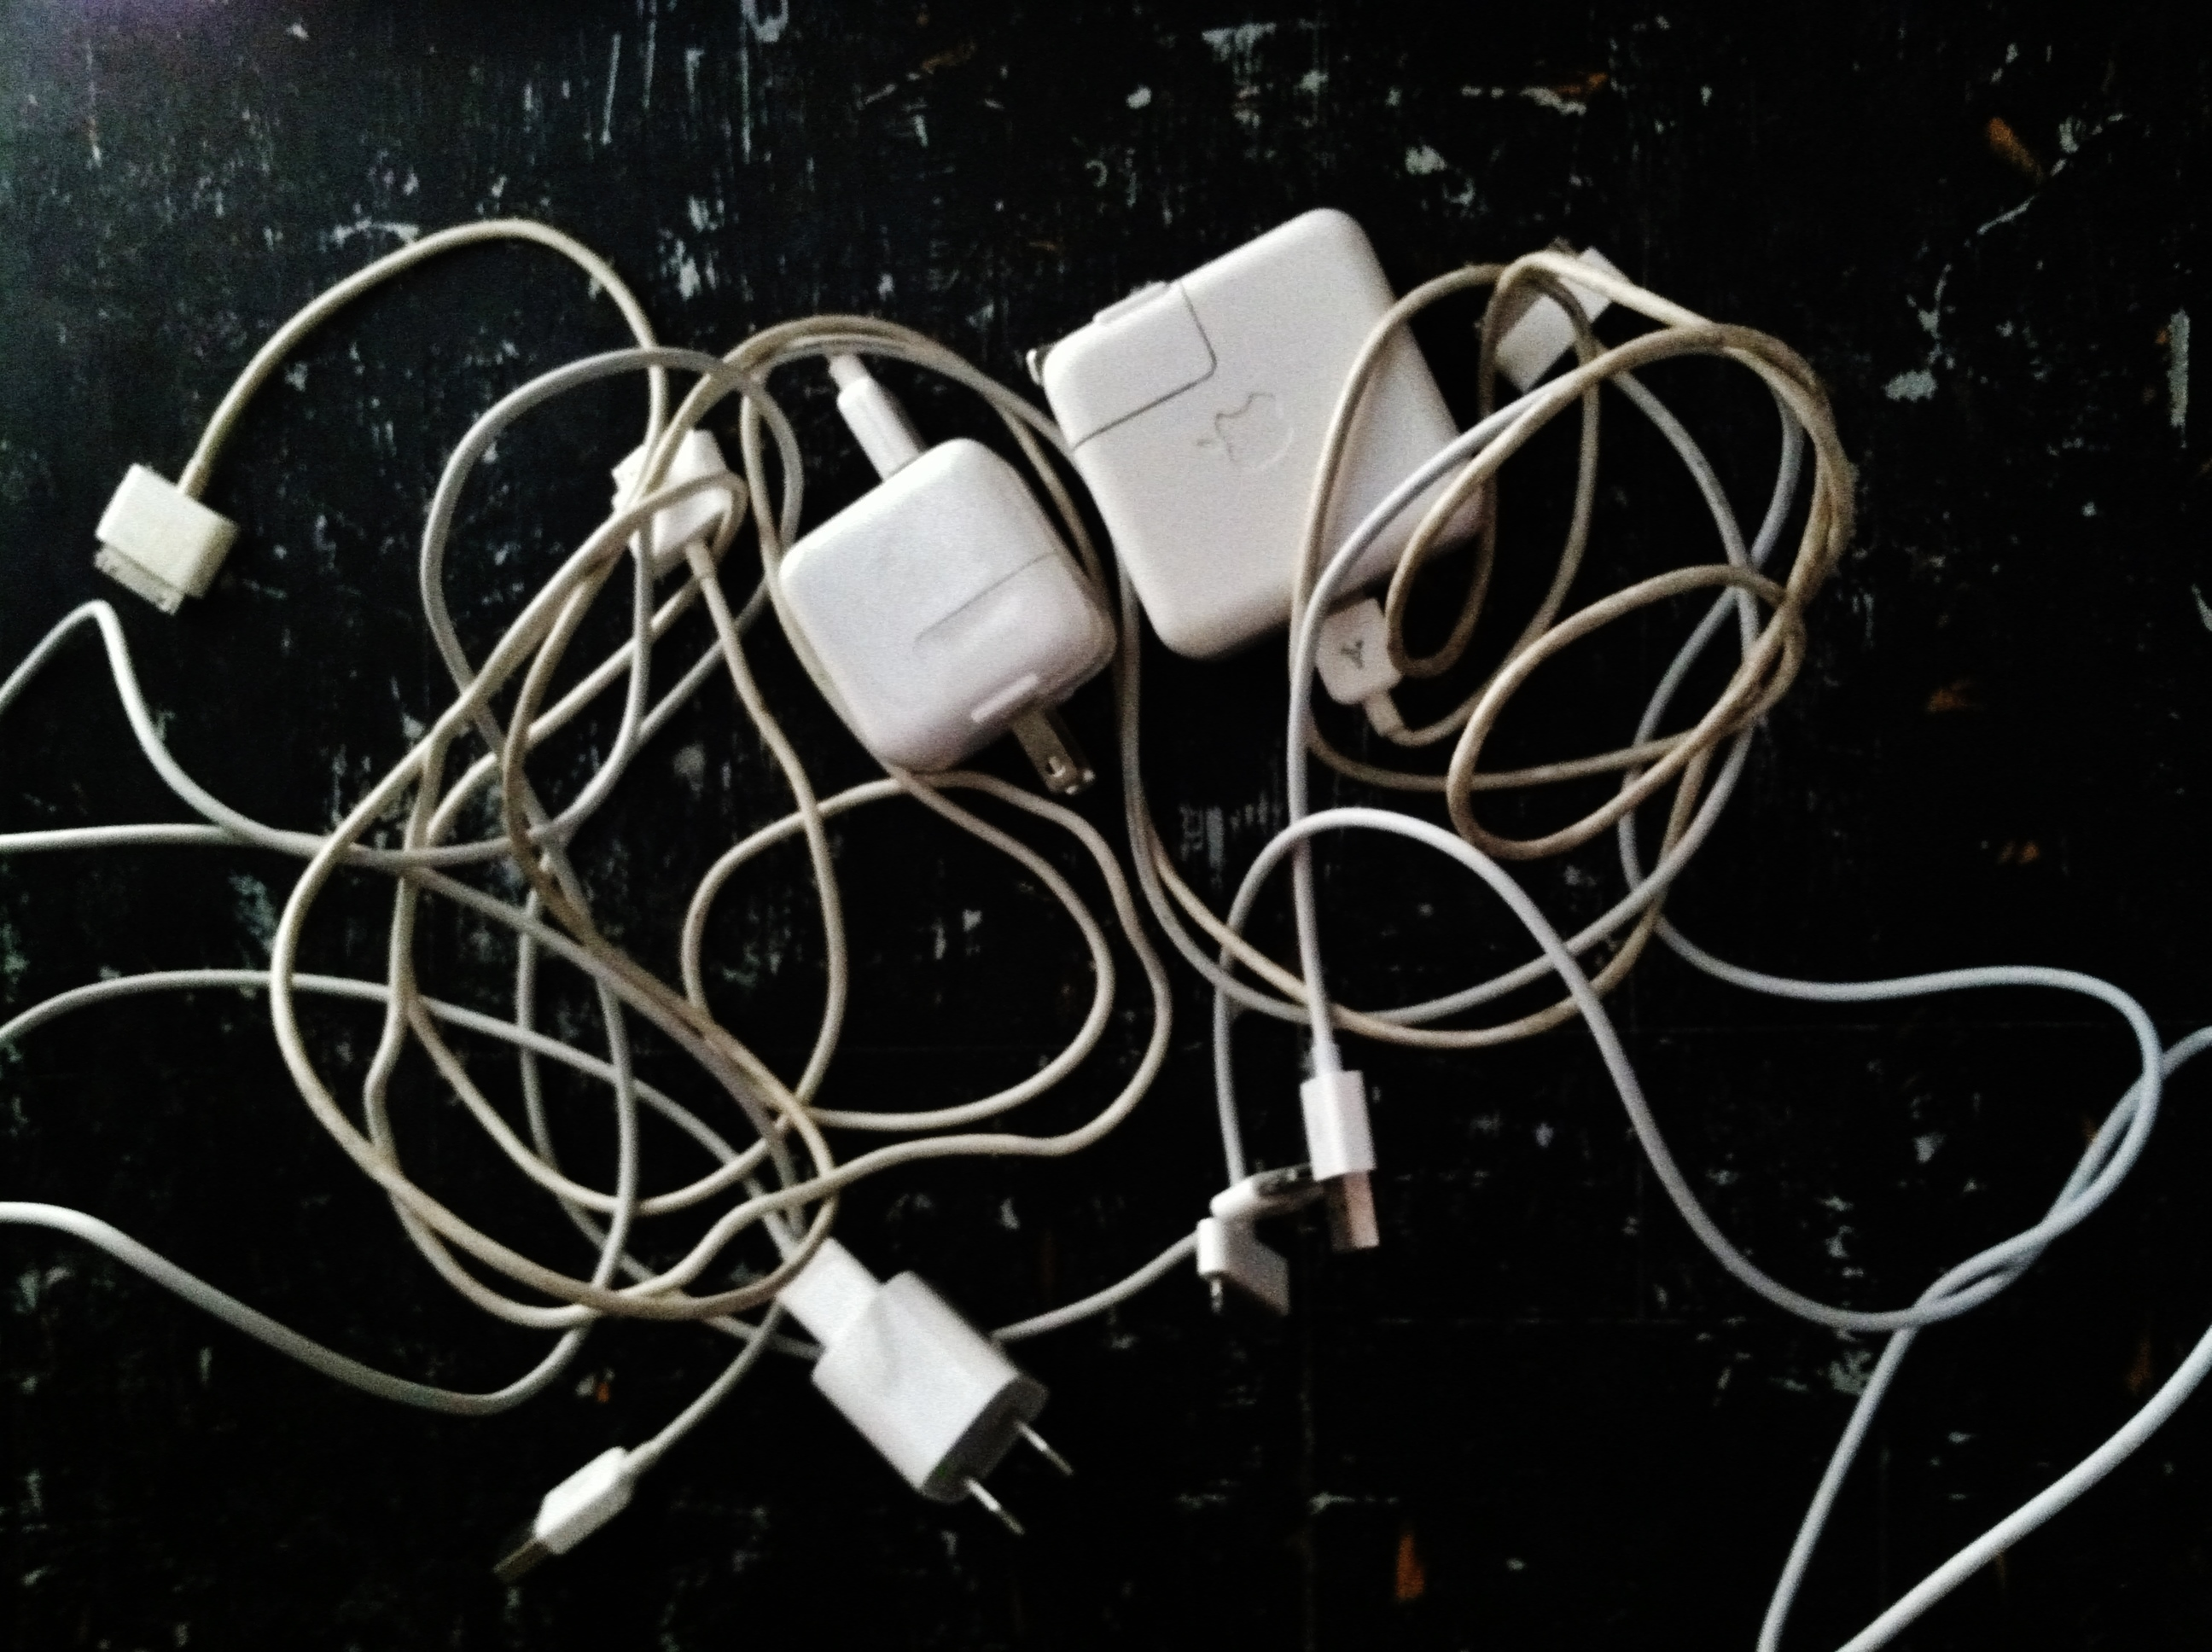 The cords, the cords!